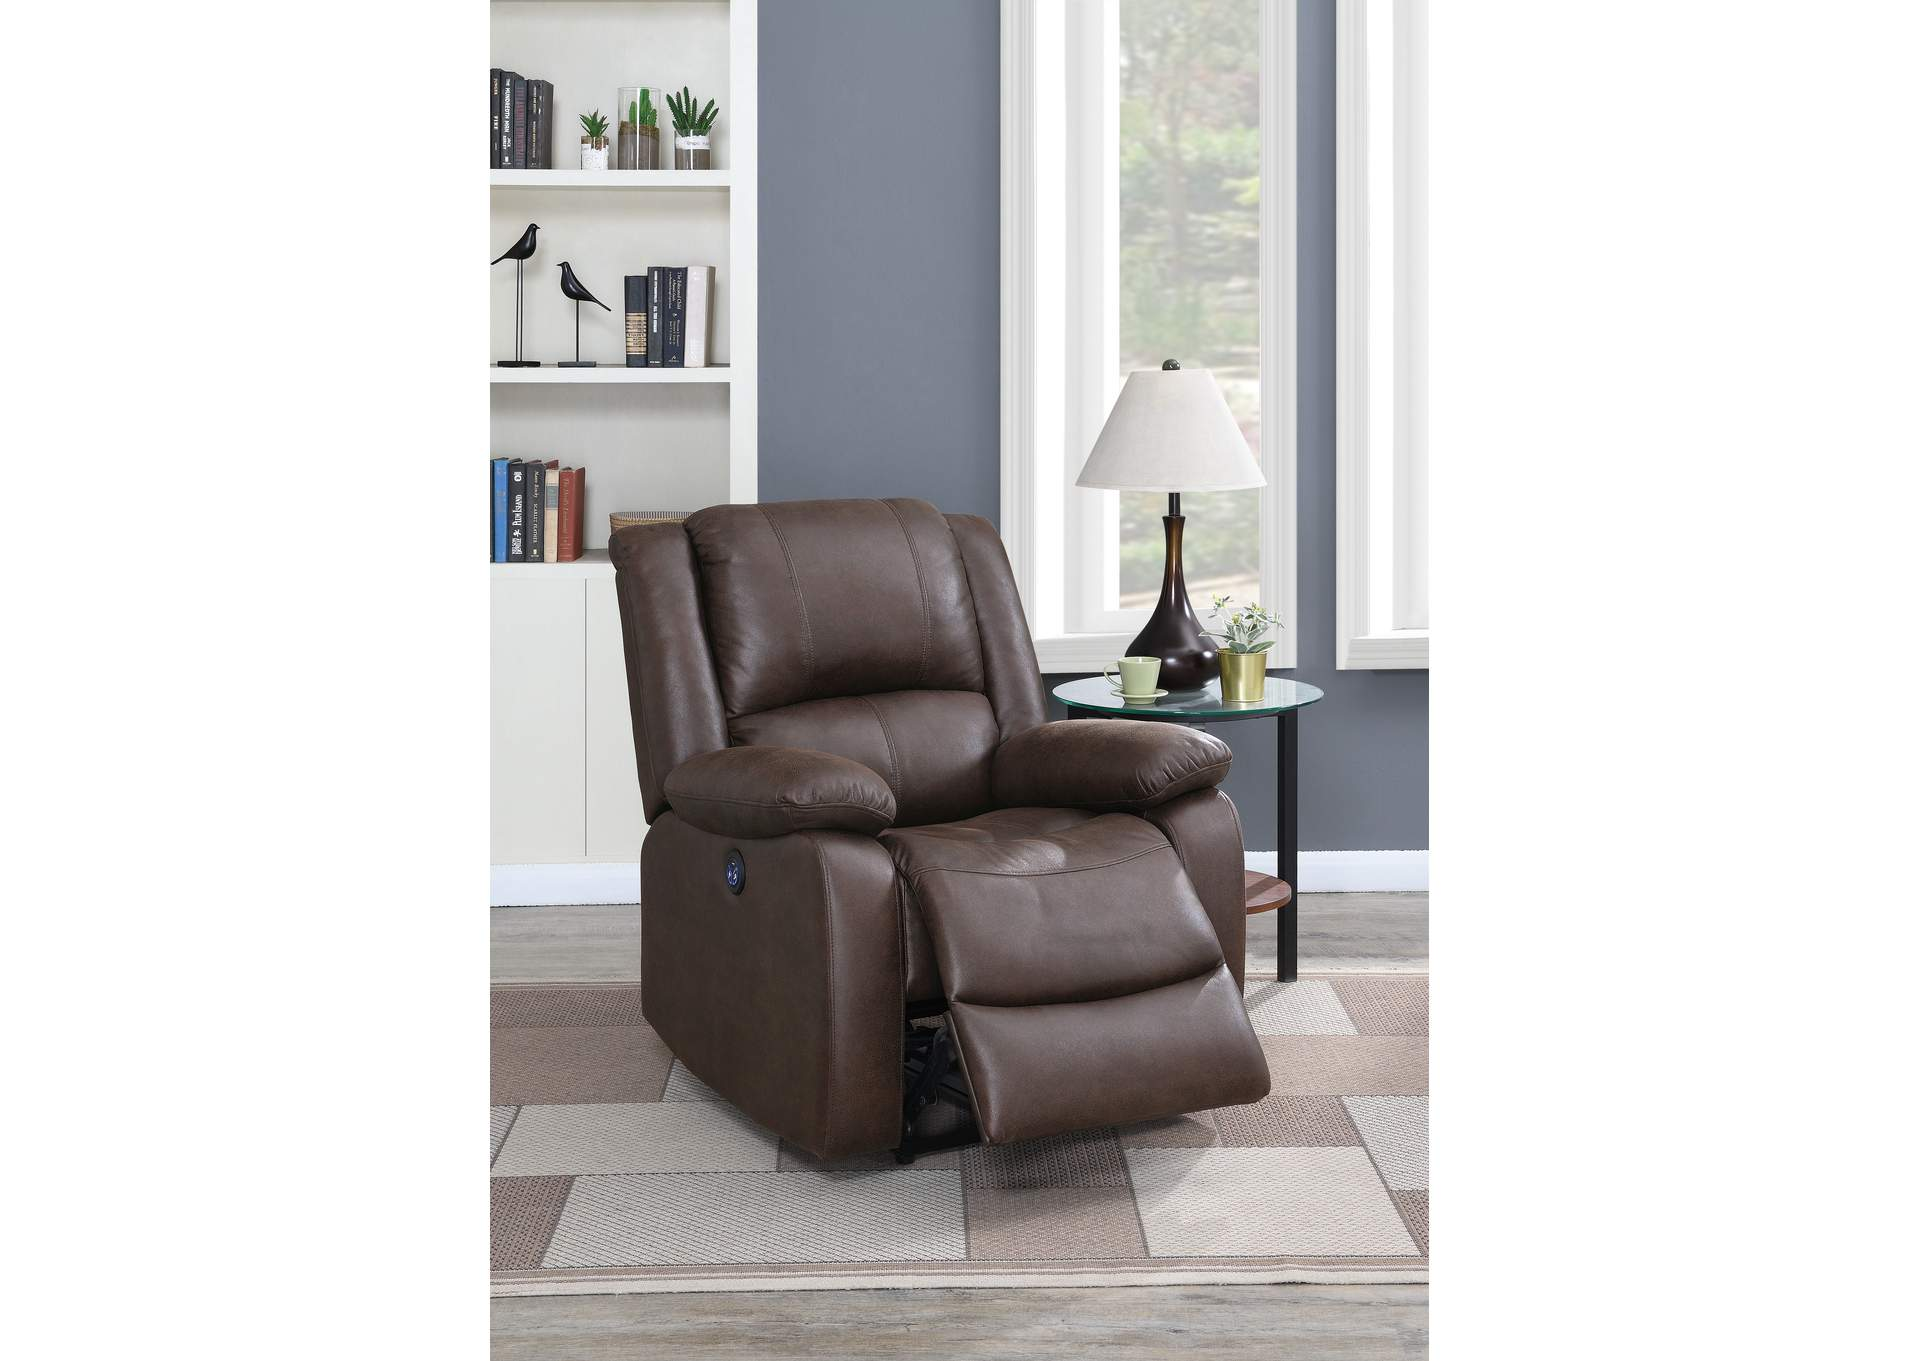 Jovfur Dark Brown Power Recliner,Poundex